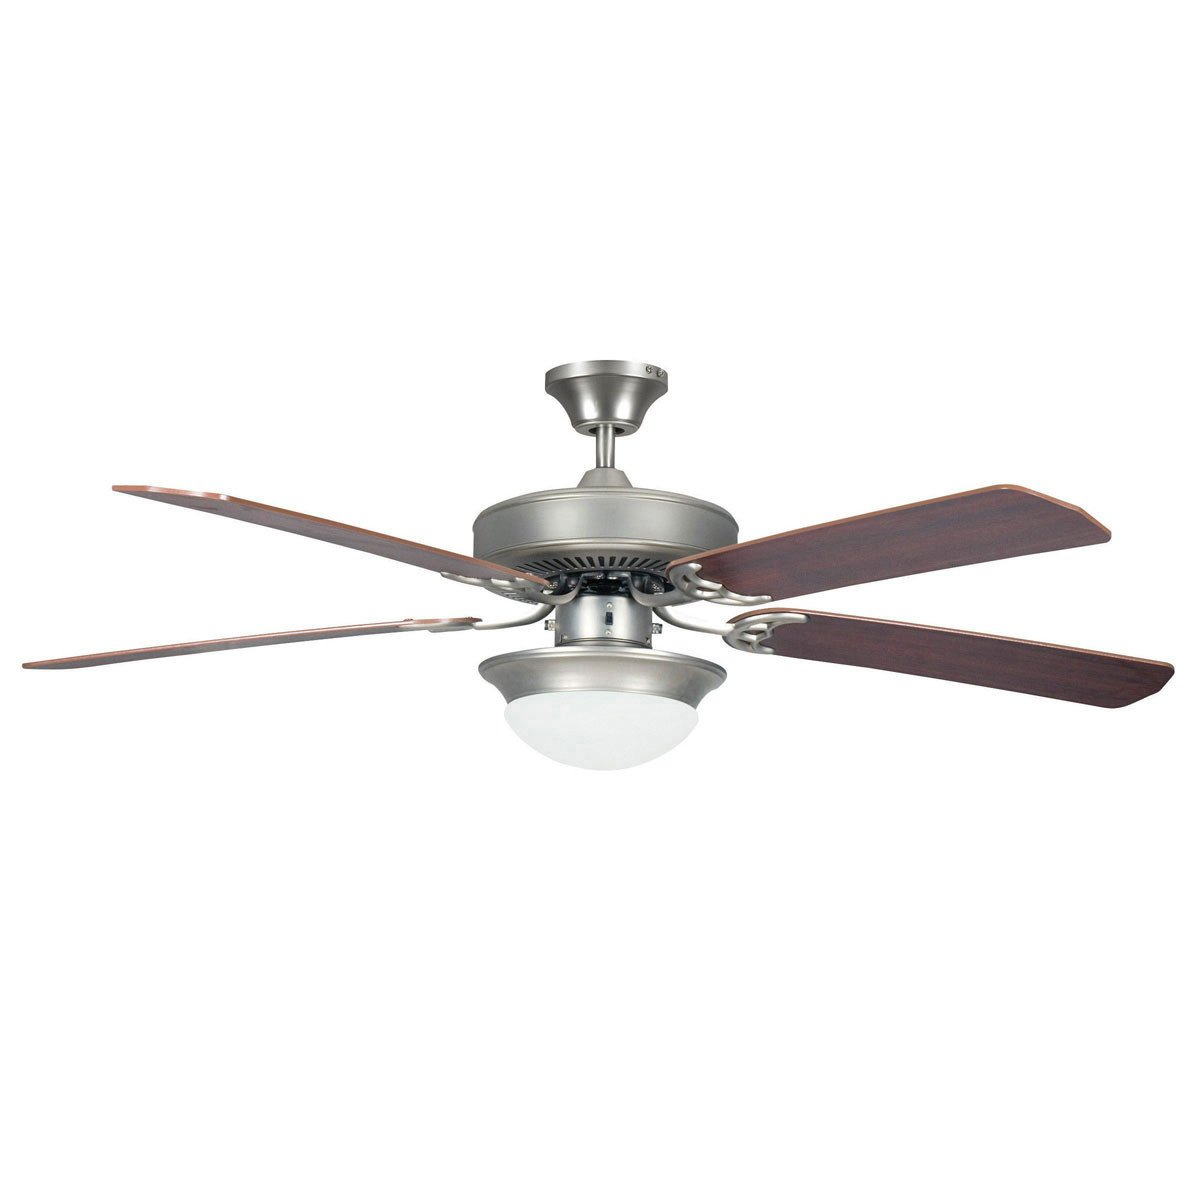 "Concord Fans 52"" Modern Energy Saver Satin Nickel Ceiling Fan with Light"